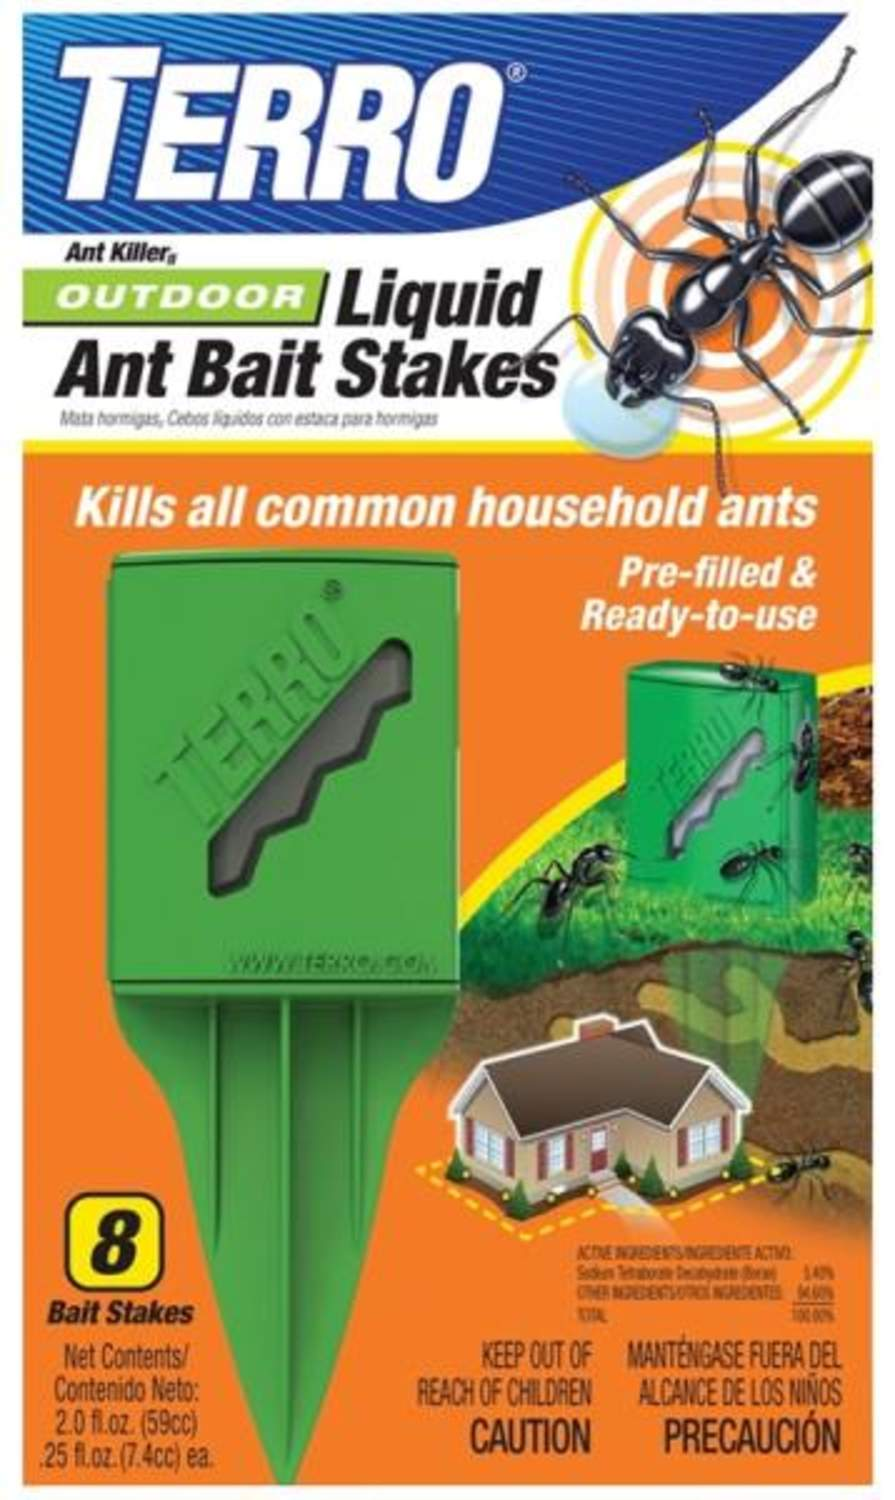 Terro T1812 Outdoor Liquid Ant Bait Stakes 8-Pack At